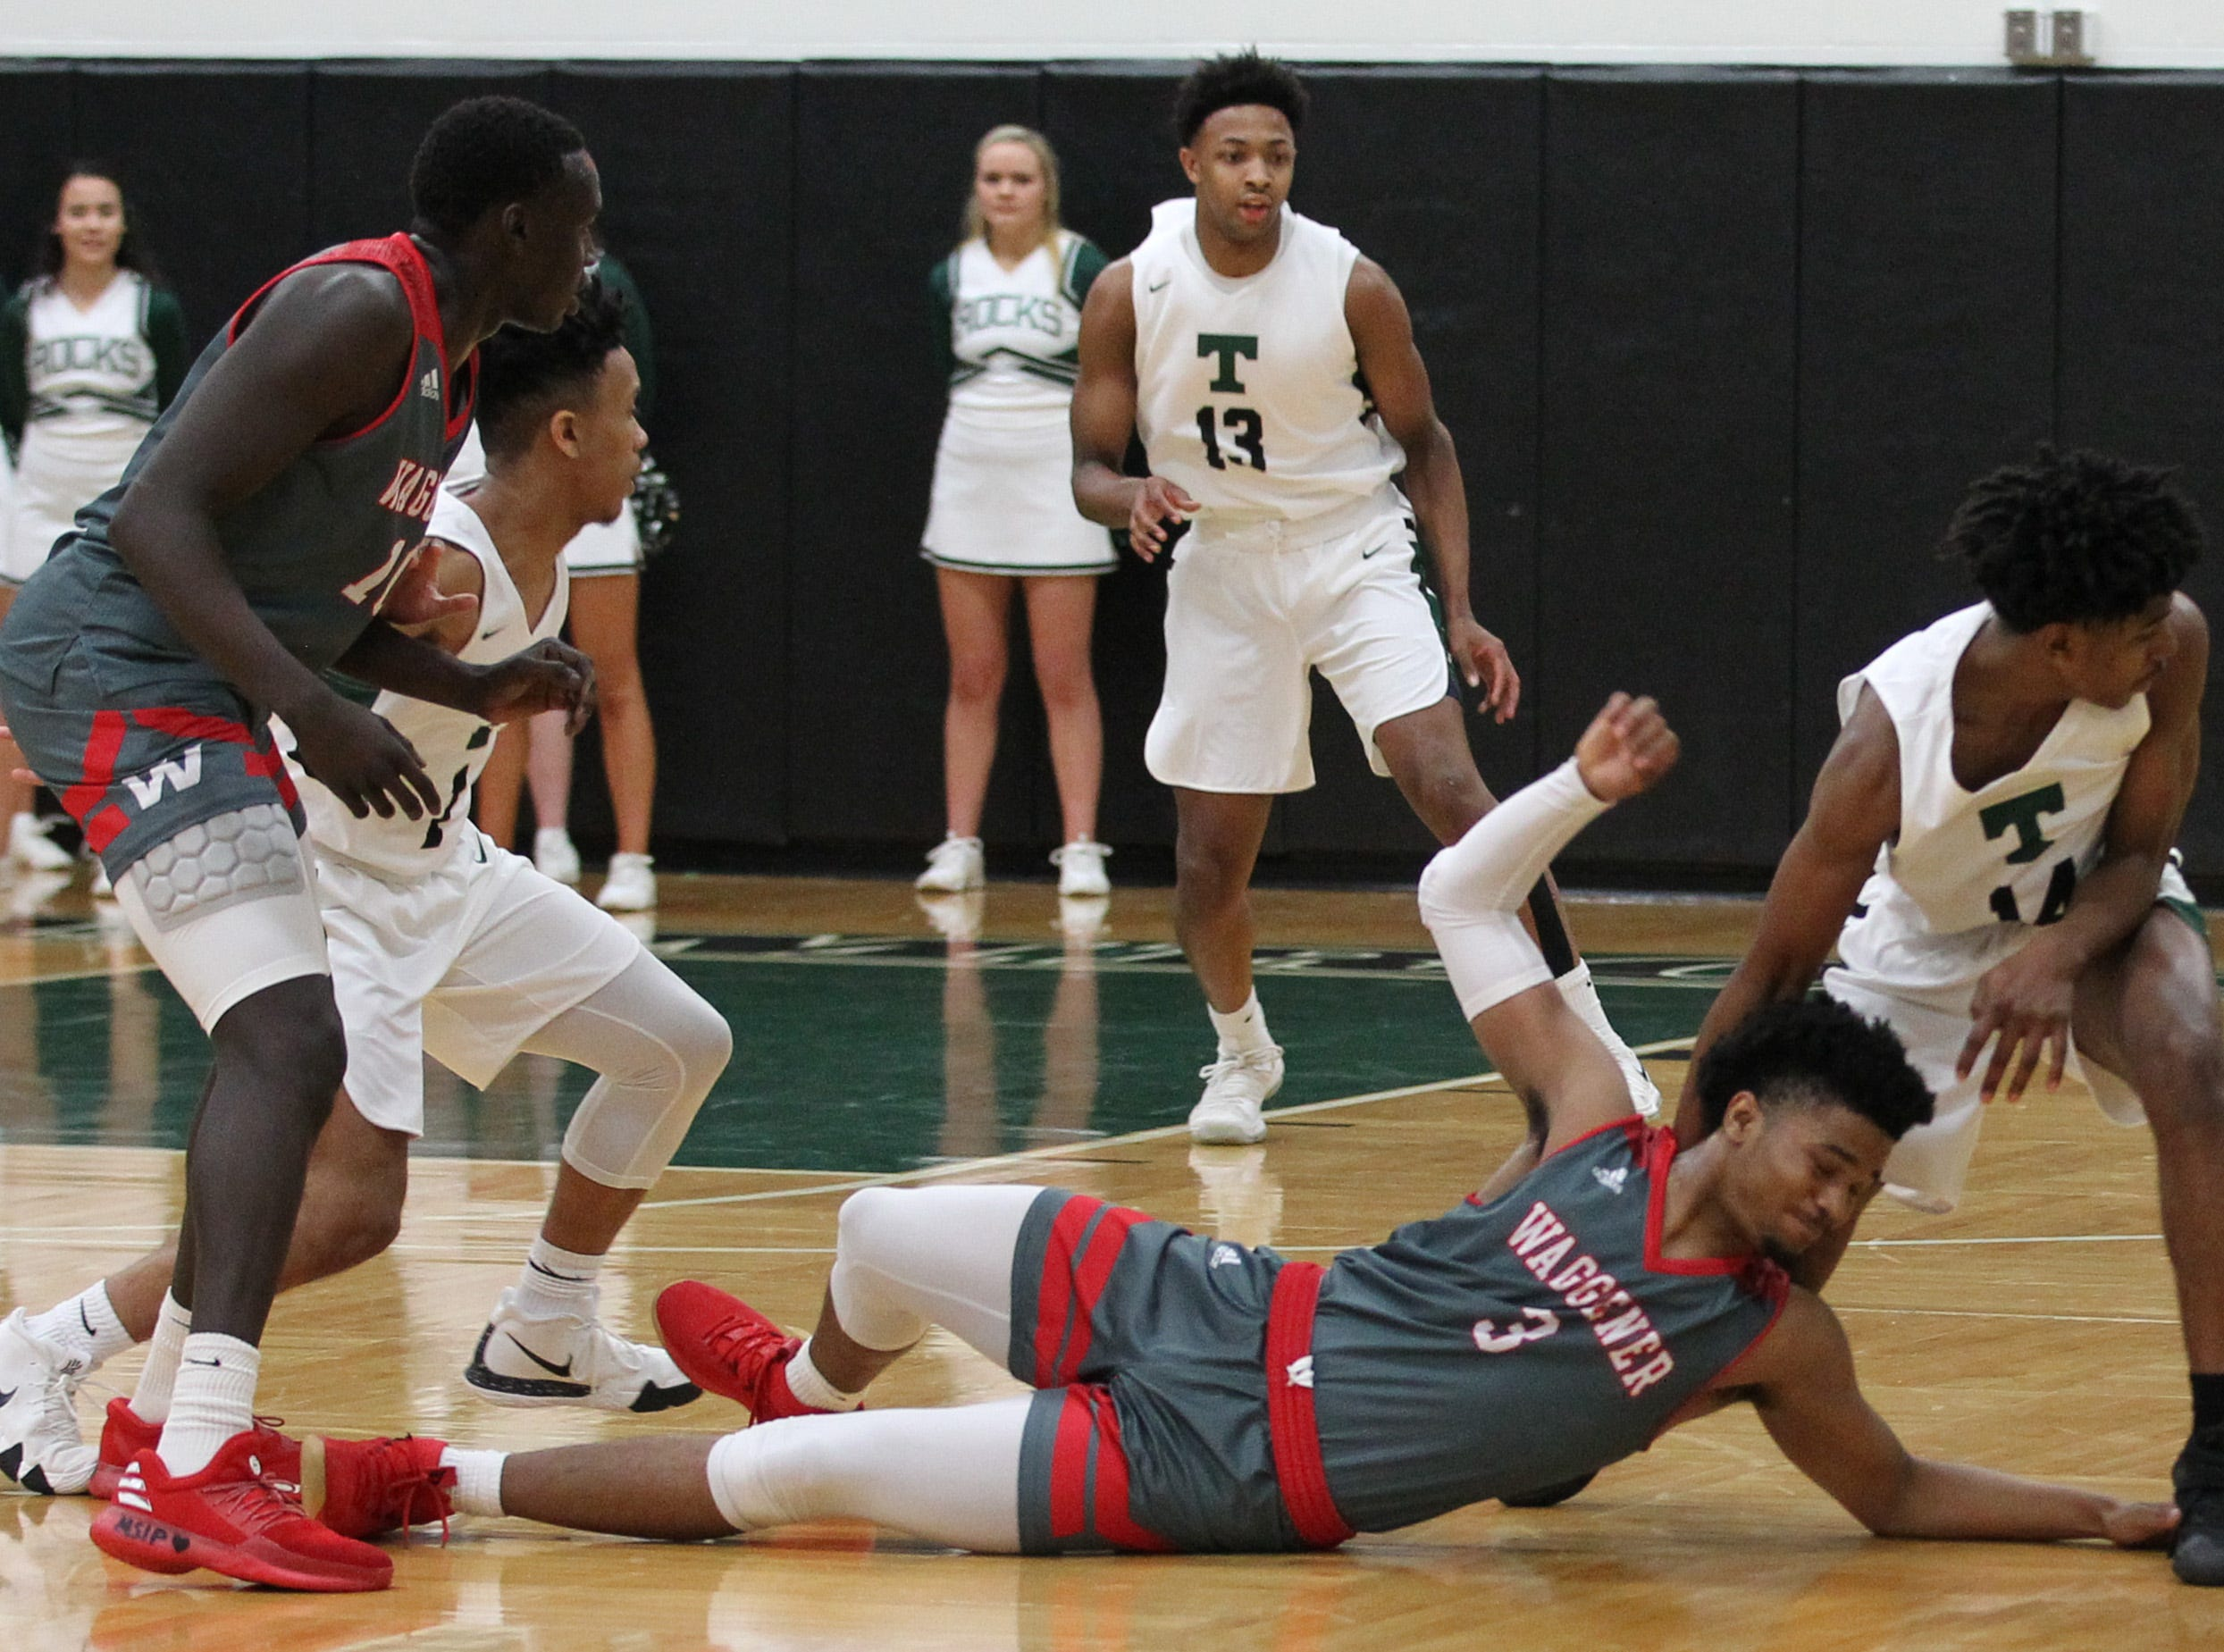 Trinity High School's Kamari Kenemore (10) fights for the loose ball with Waggener High School's Dallas Rufus (3) during the first half of play at Trinity High School in Louisville, Kentucky,       Jan. 11,  2019.